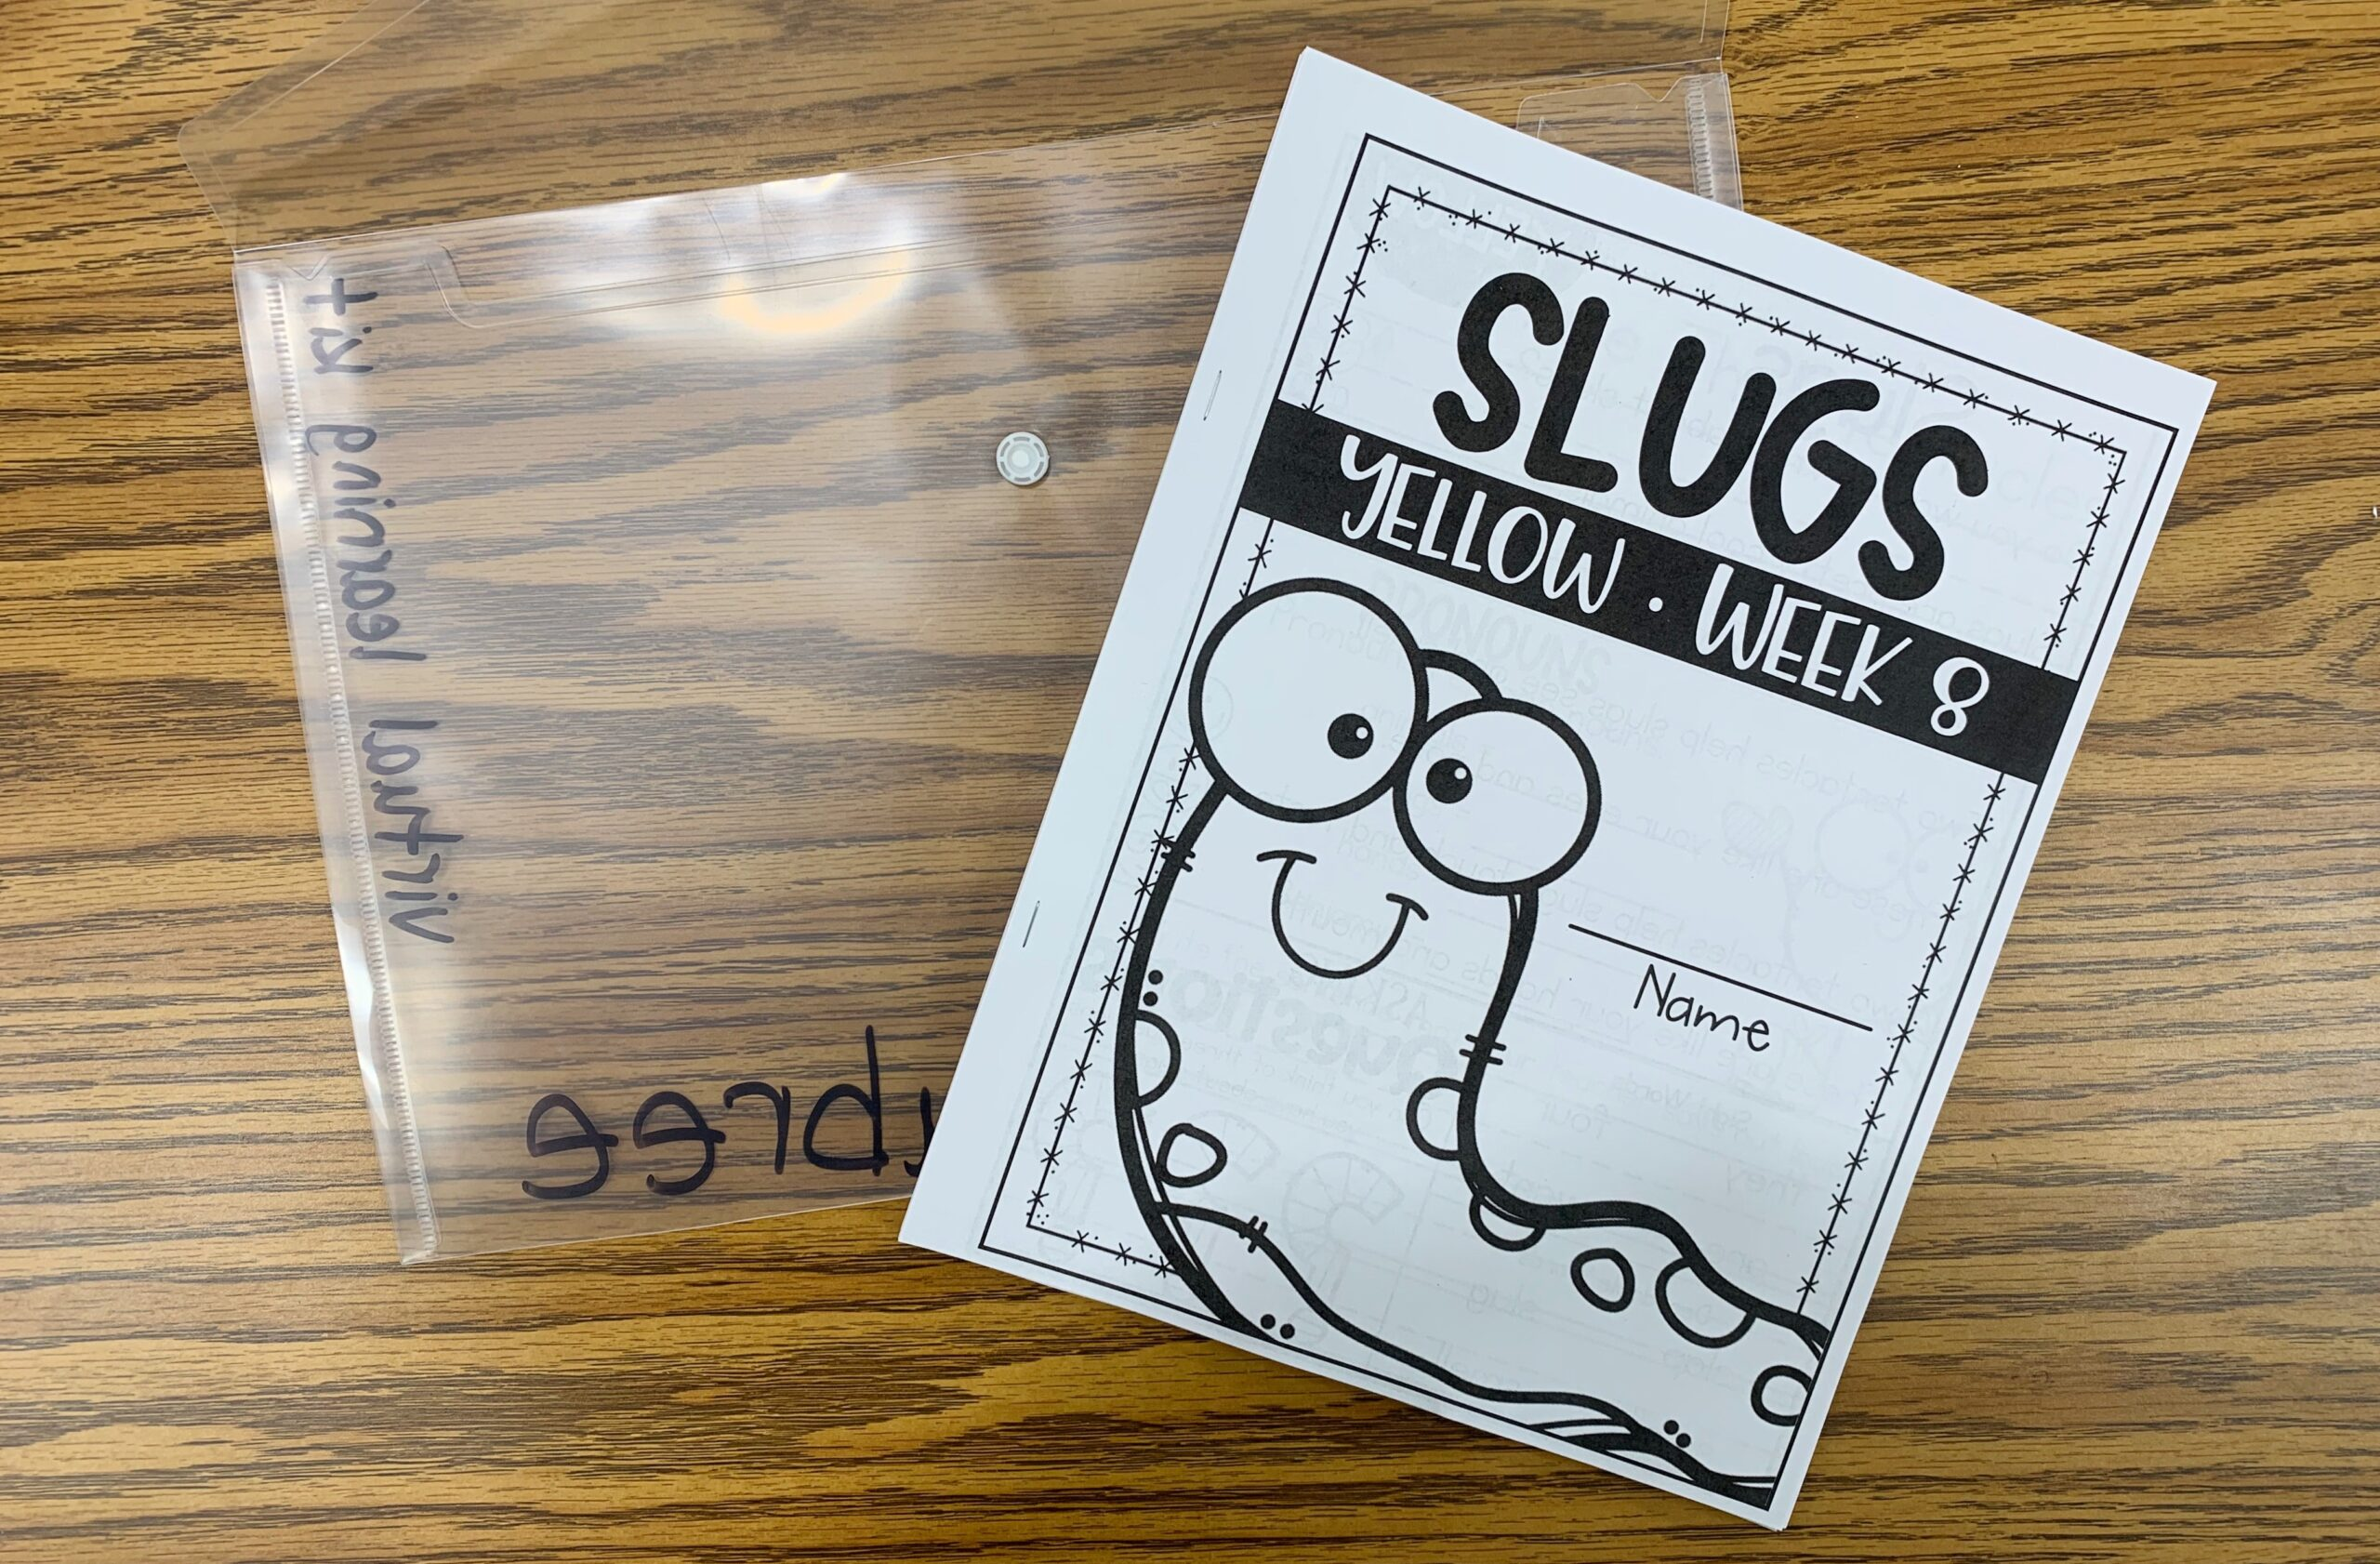 Virtual Learning kit with Slugs yellow week 8 book from reading series